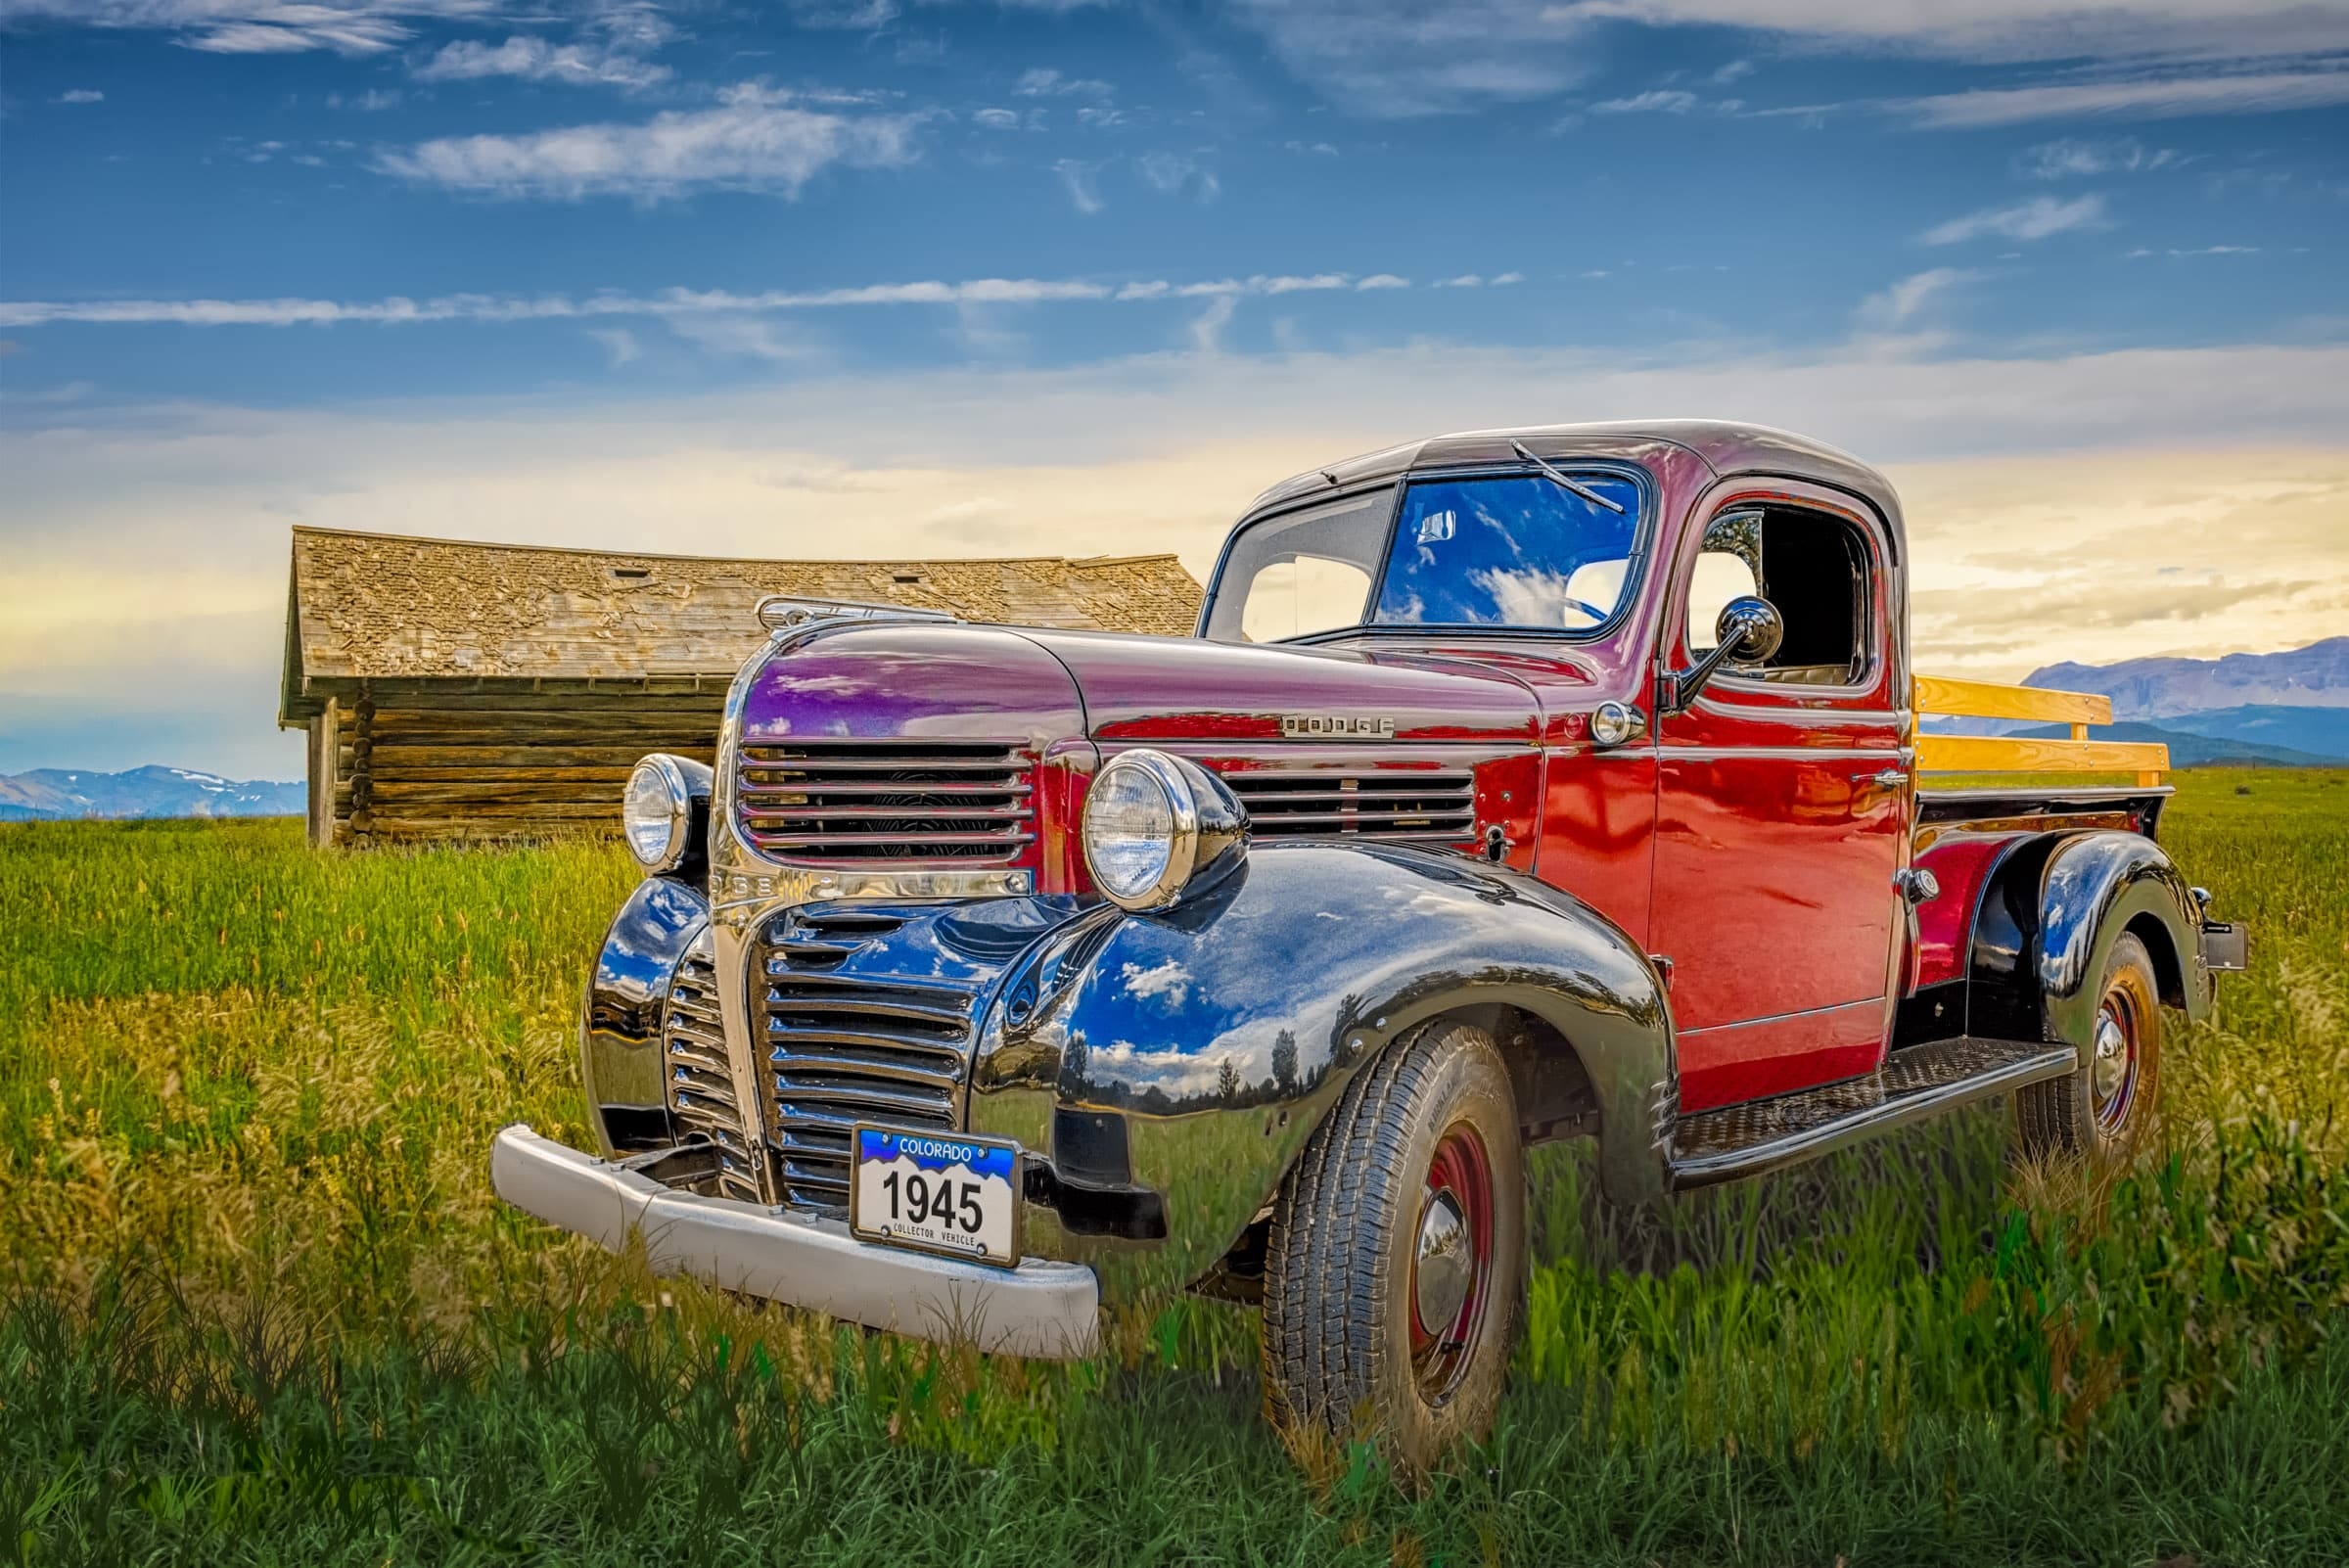 1945 Dodge Pickup Truck With Red Body And Black Fender Automotive Photography Portfolio